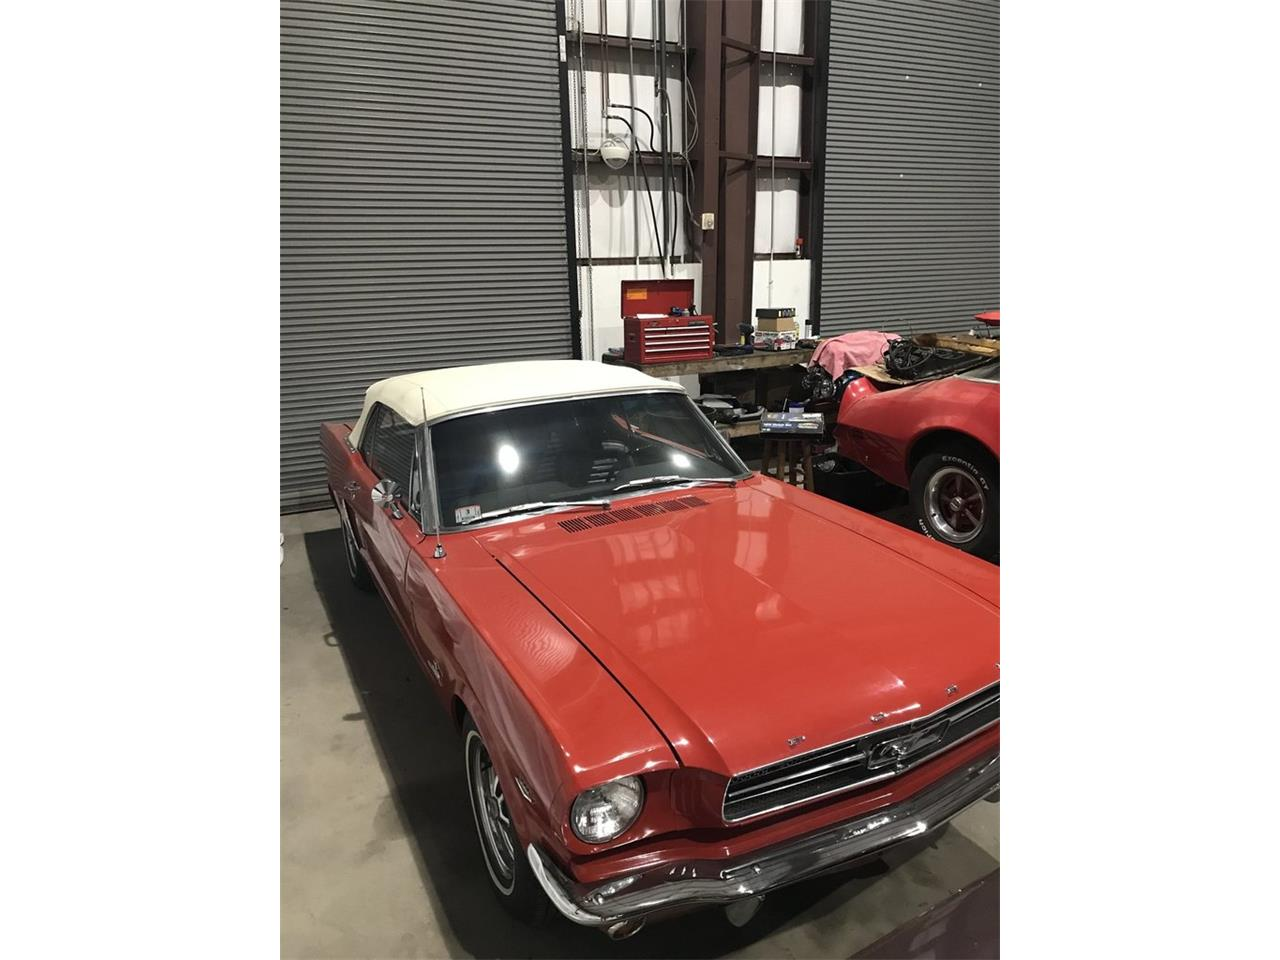 Large Picture of 1965 Mustang located in Punta Gorda Florida Auction Vehicle Offered by Premier Auction Group - NF3X